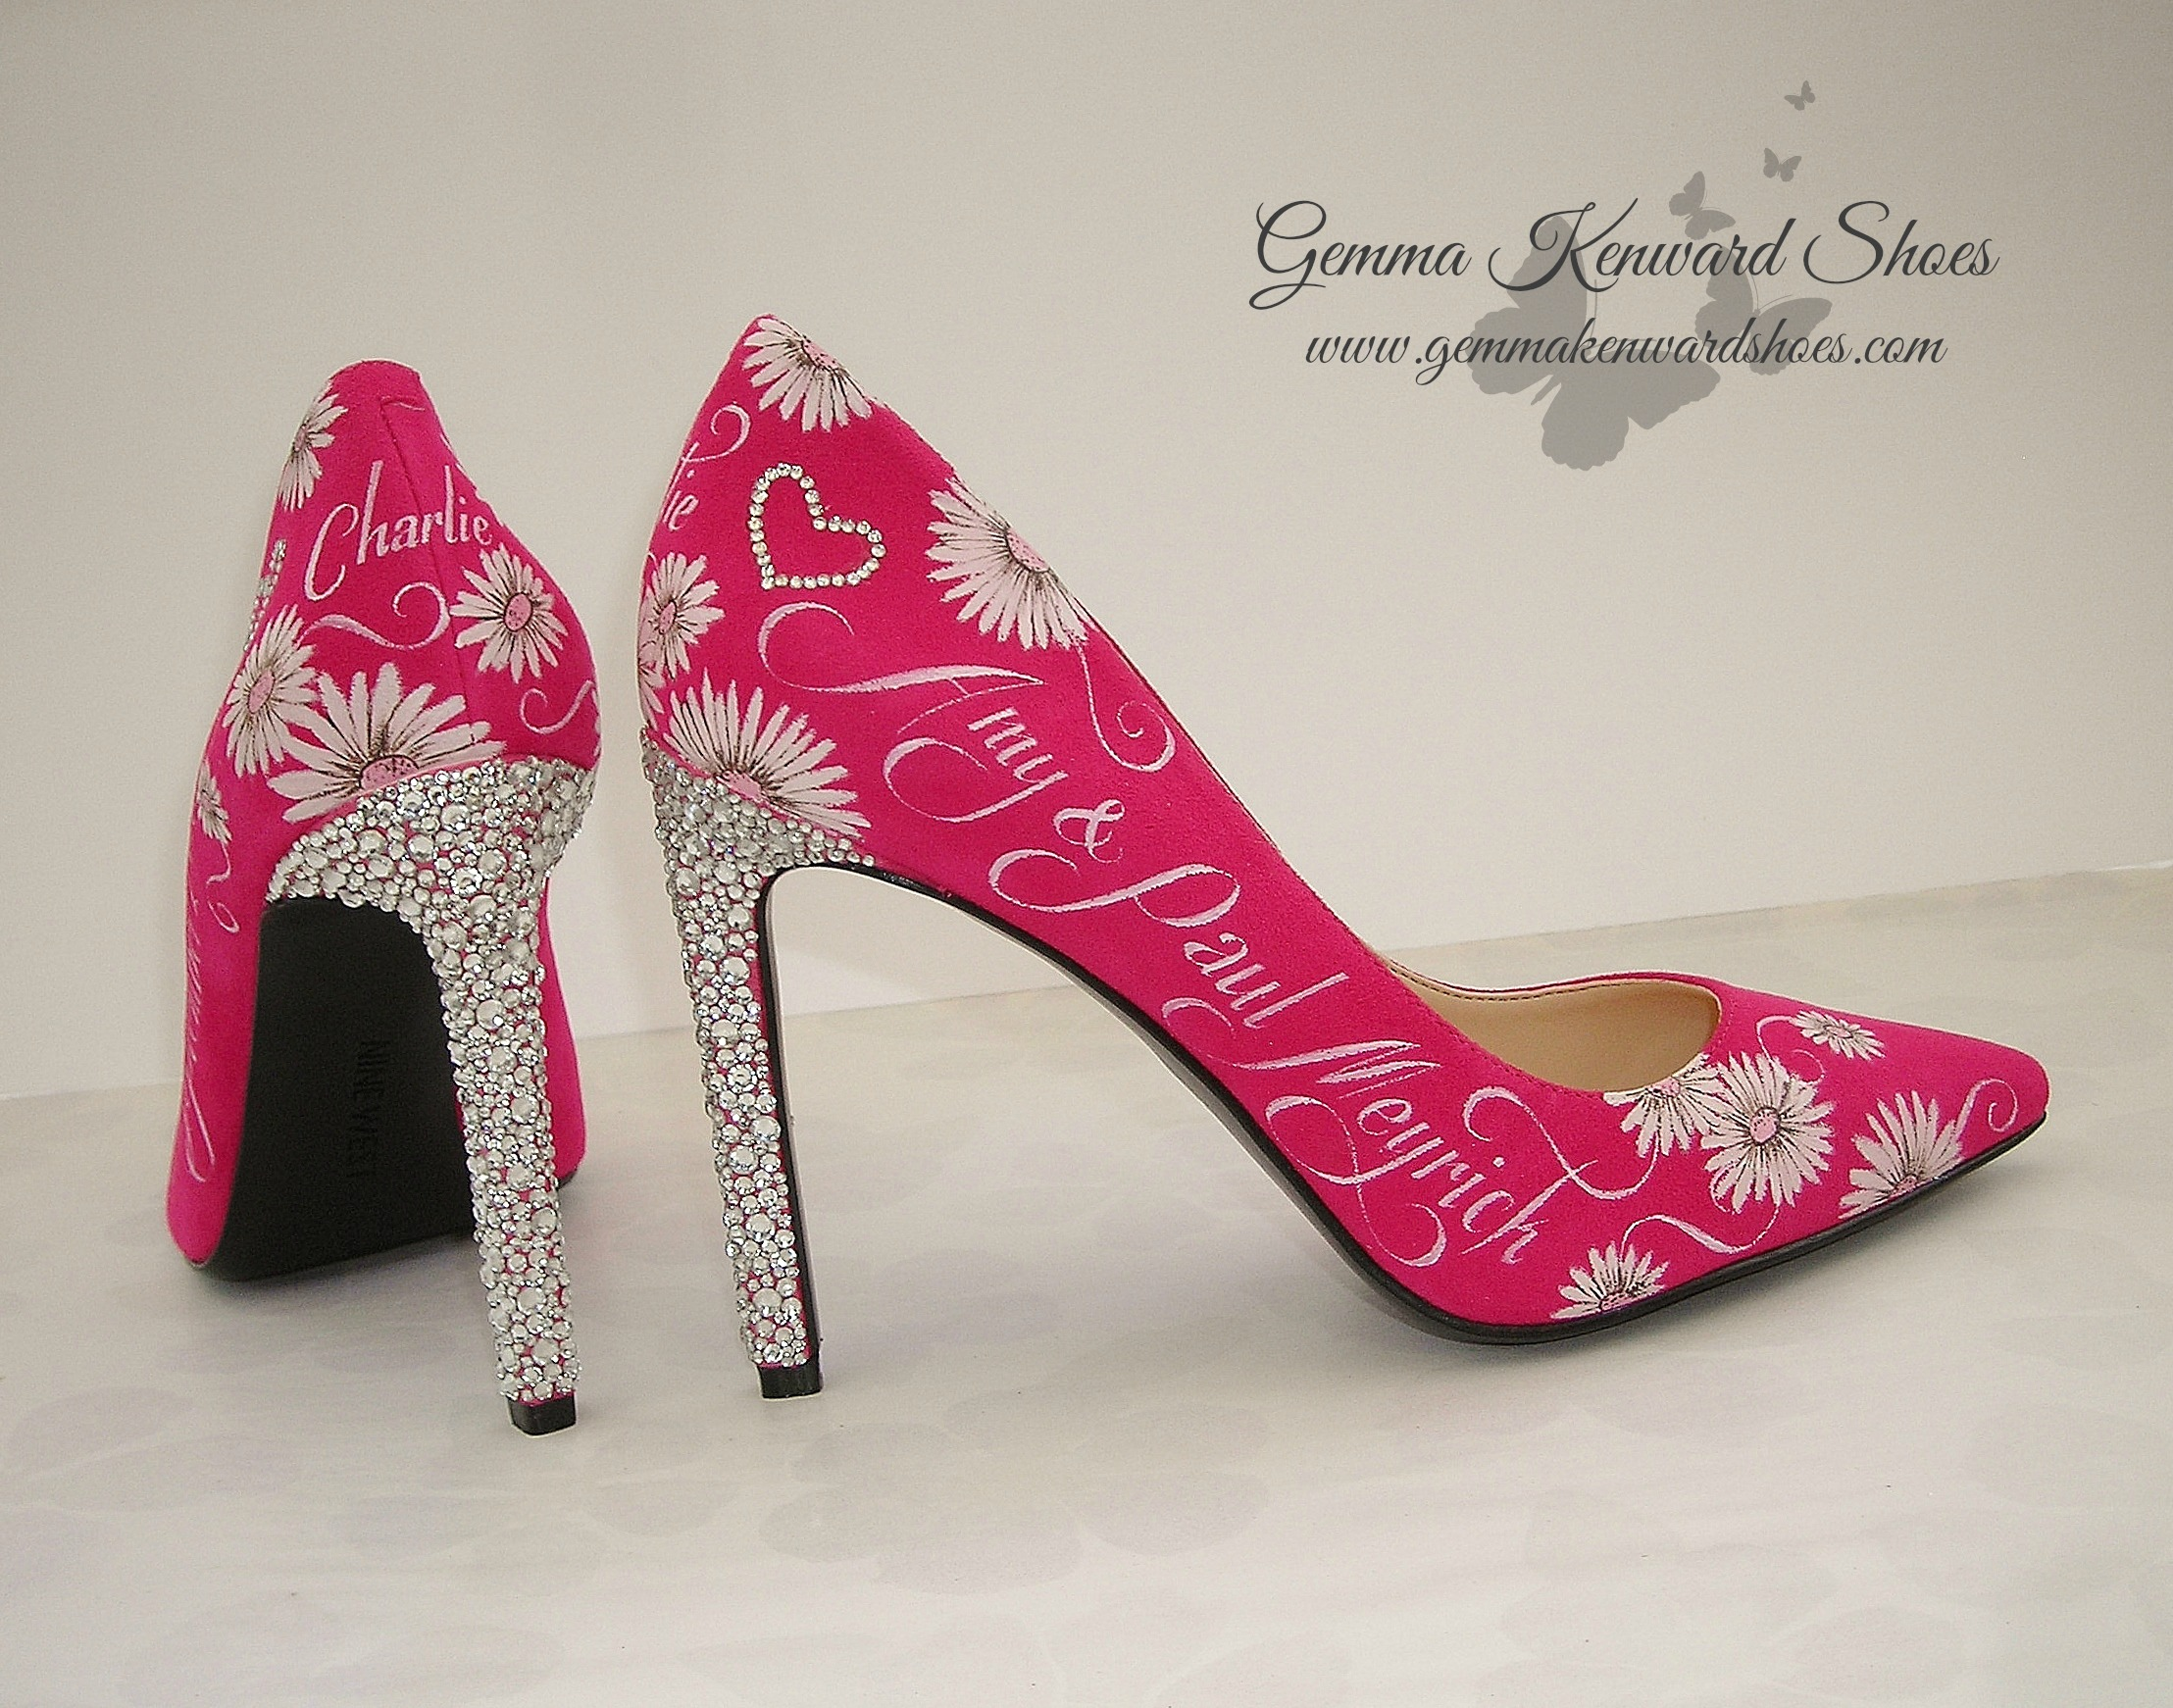 Swarovski diamond wedding shoes